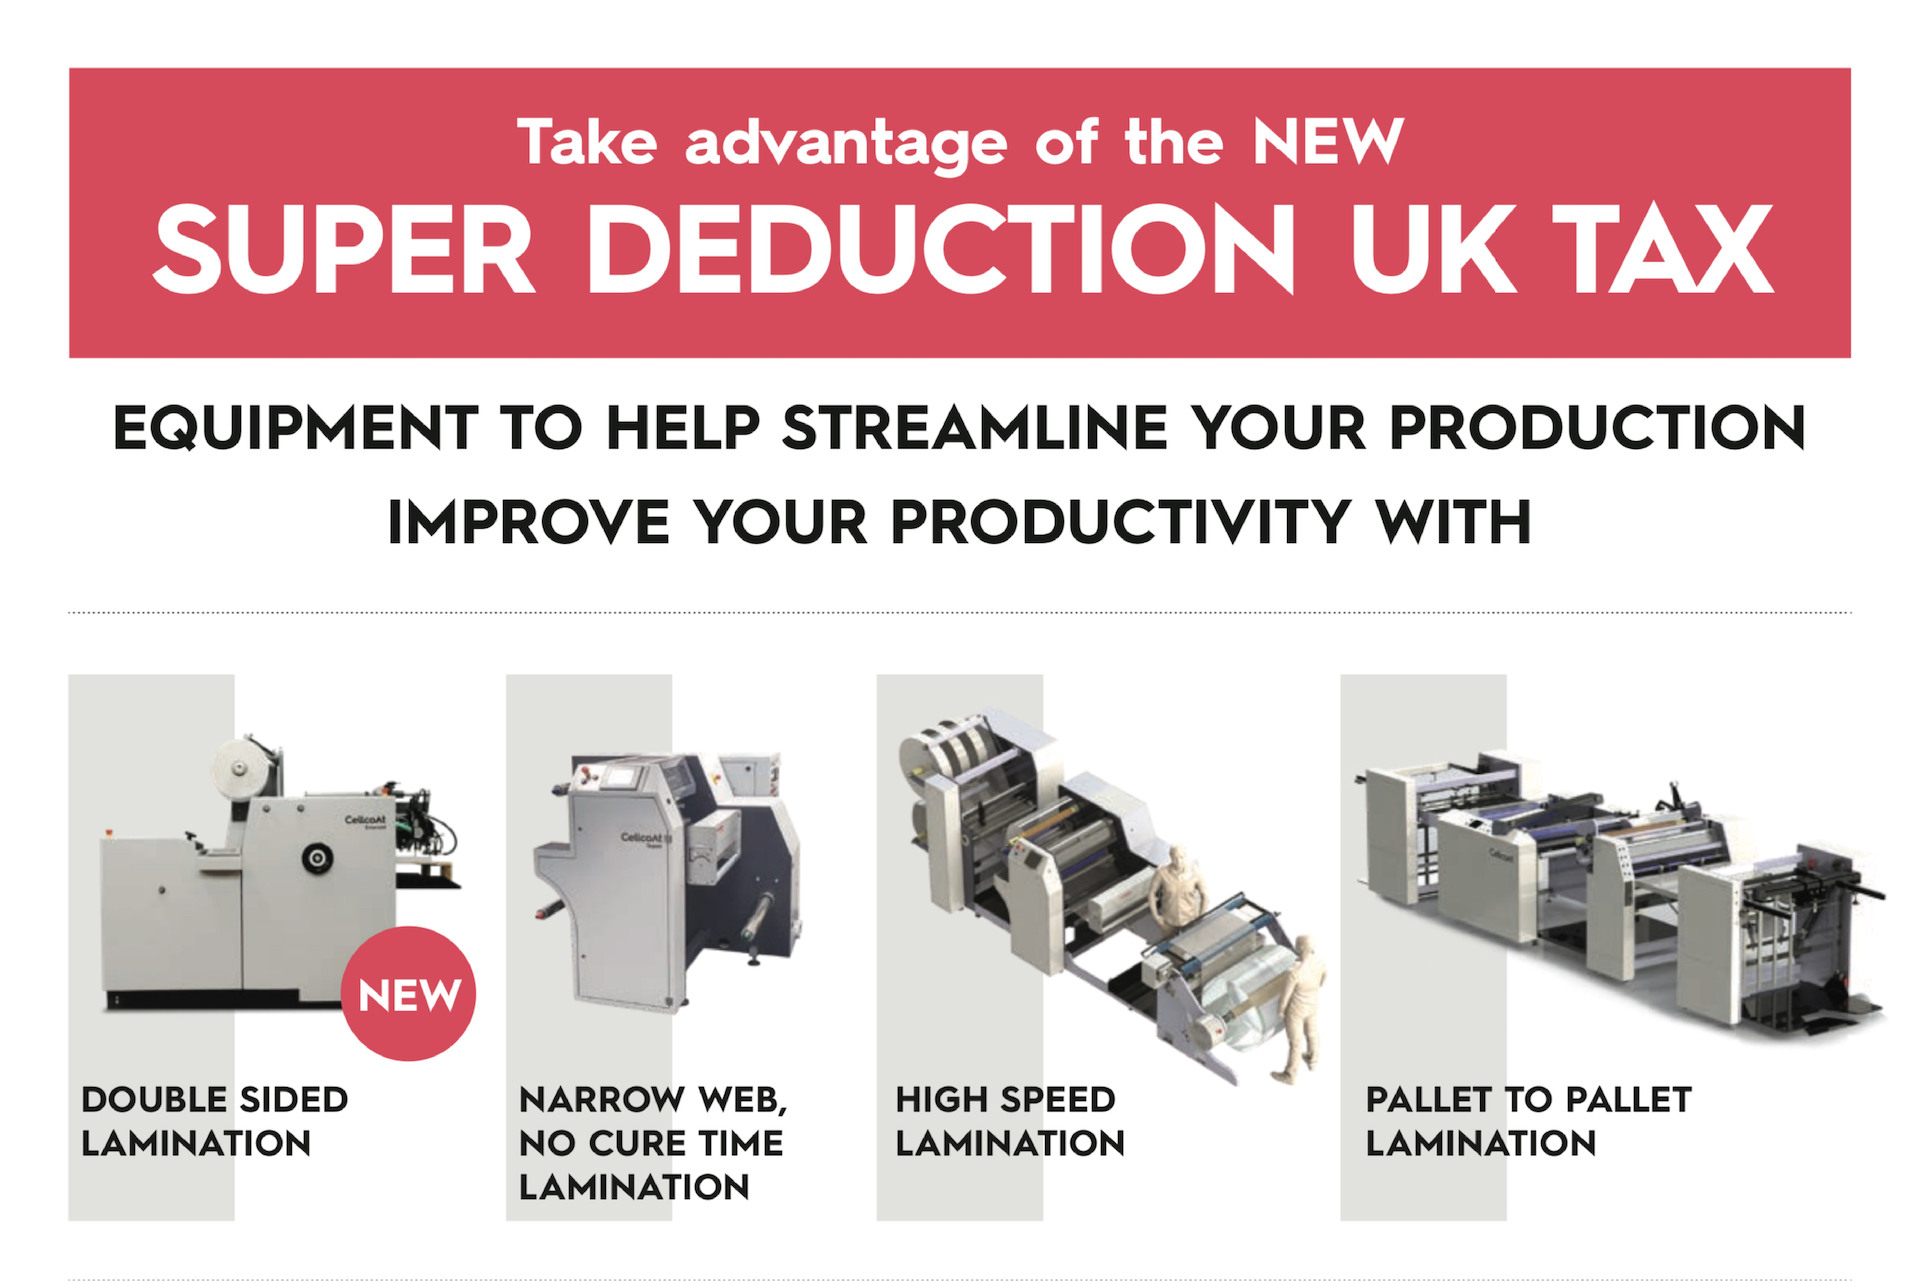 CellCoat Super Deduction UK Tax in machinery